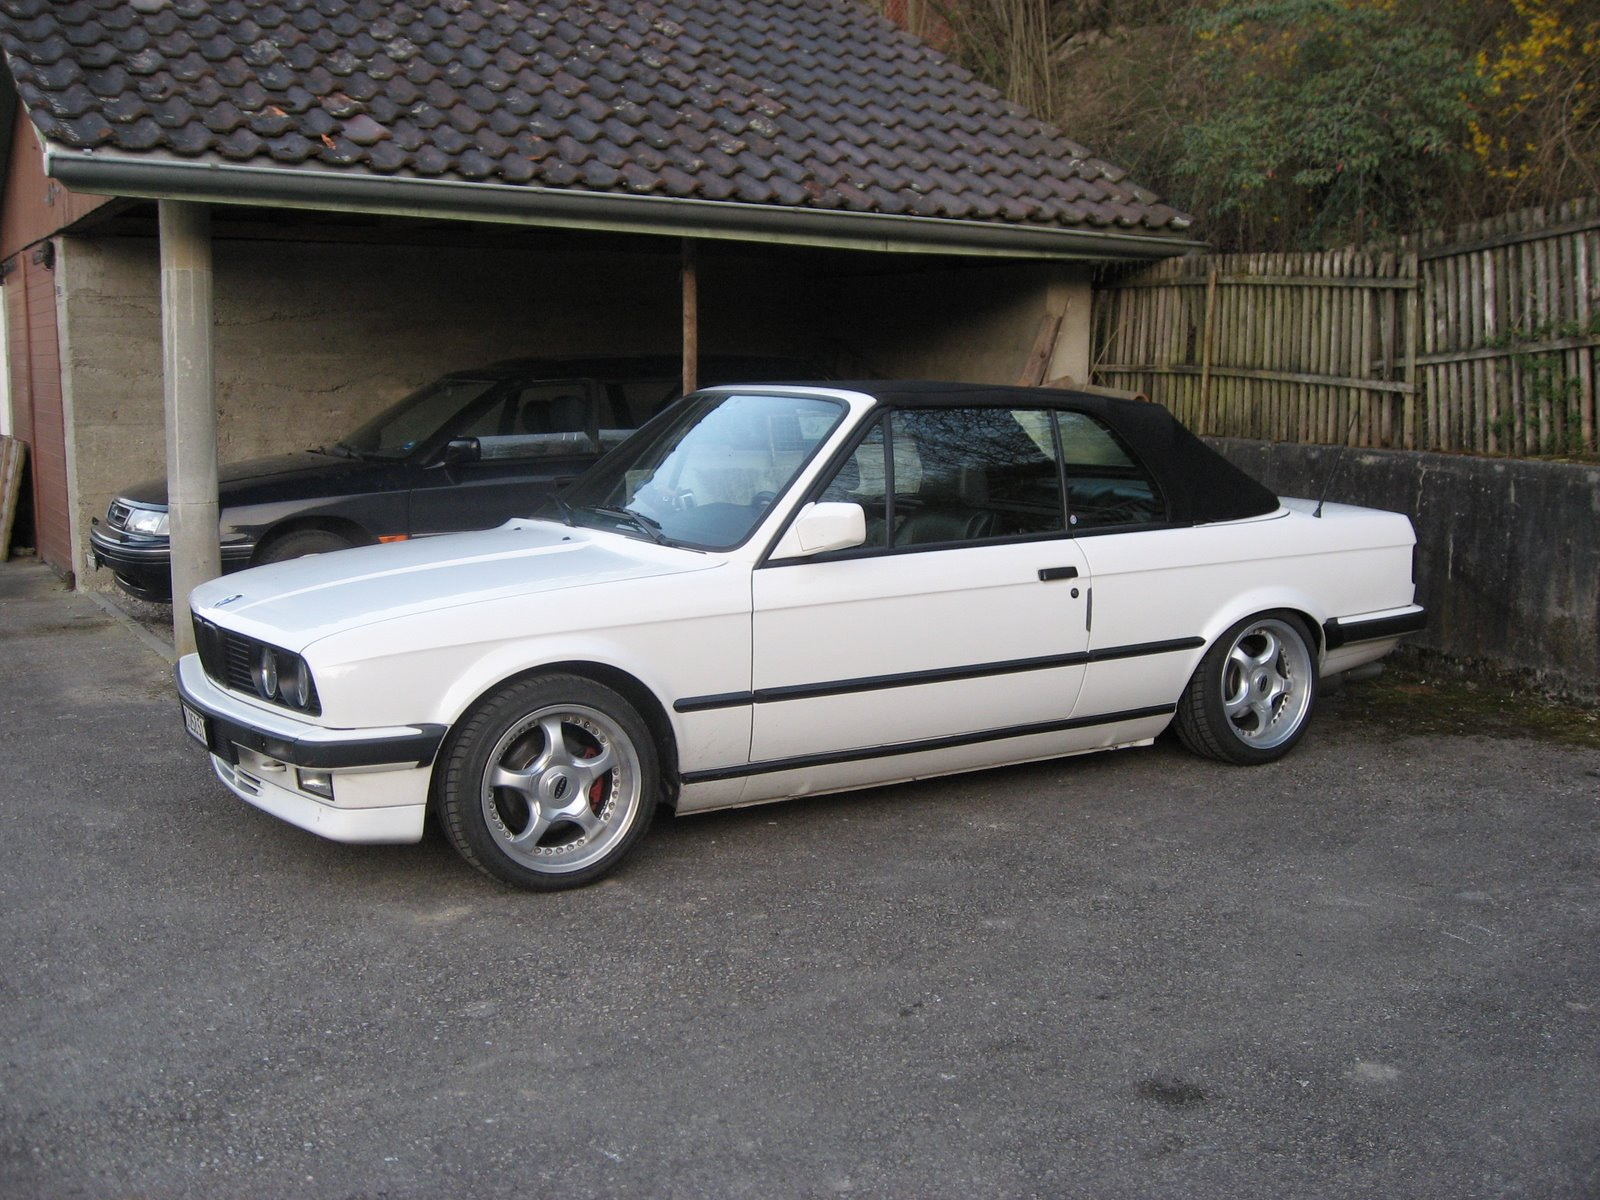 BMW 3 series 324td 1989 photo - 10